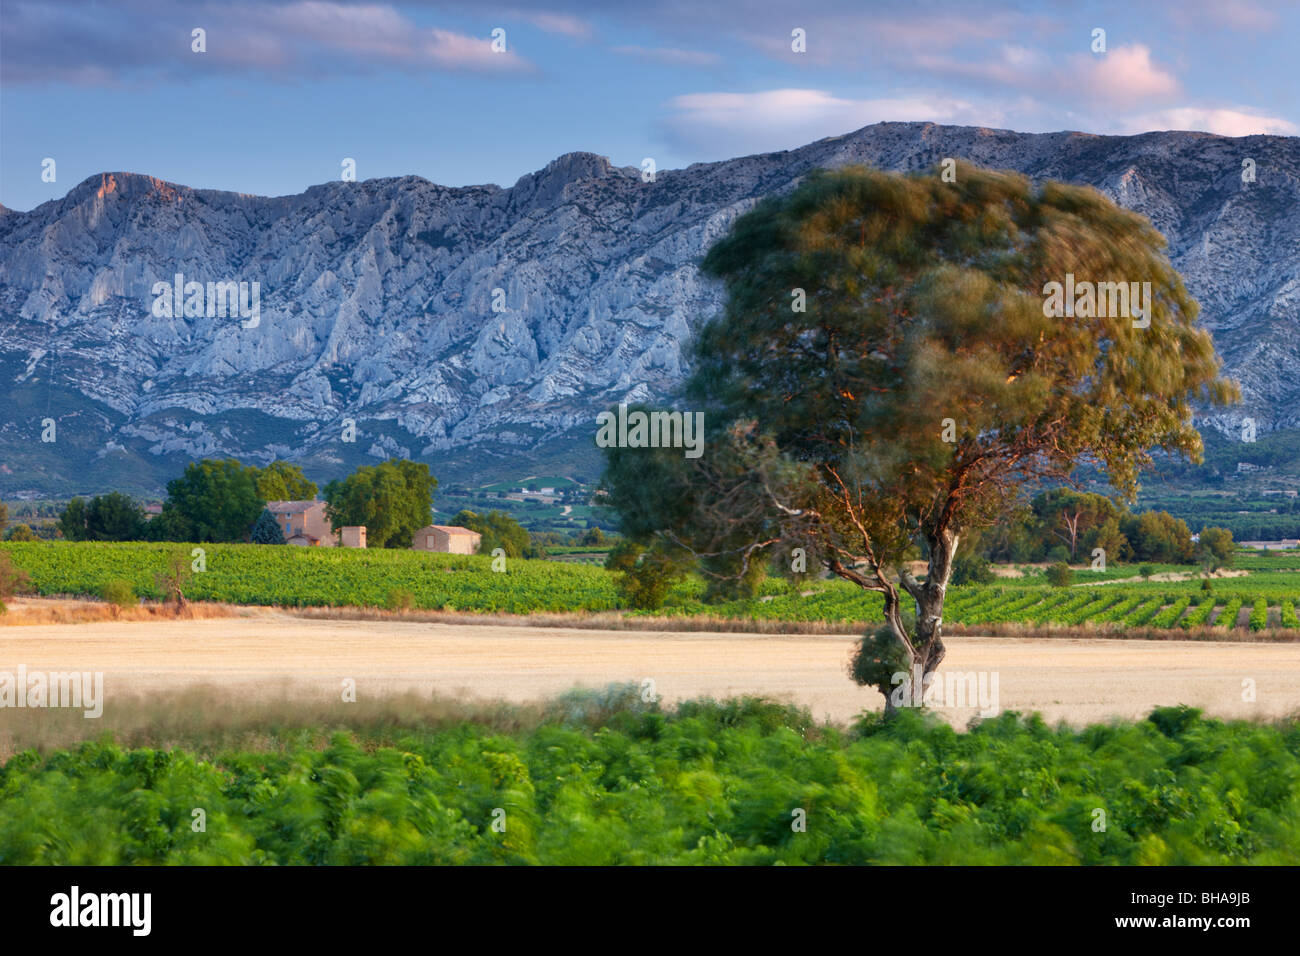 a tree blowing in the breeze at dawn with Montagne Sainte-Victoire beyond, nr Puyloubier, Bouches-du-Rhone, Provence, - Stock Image